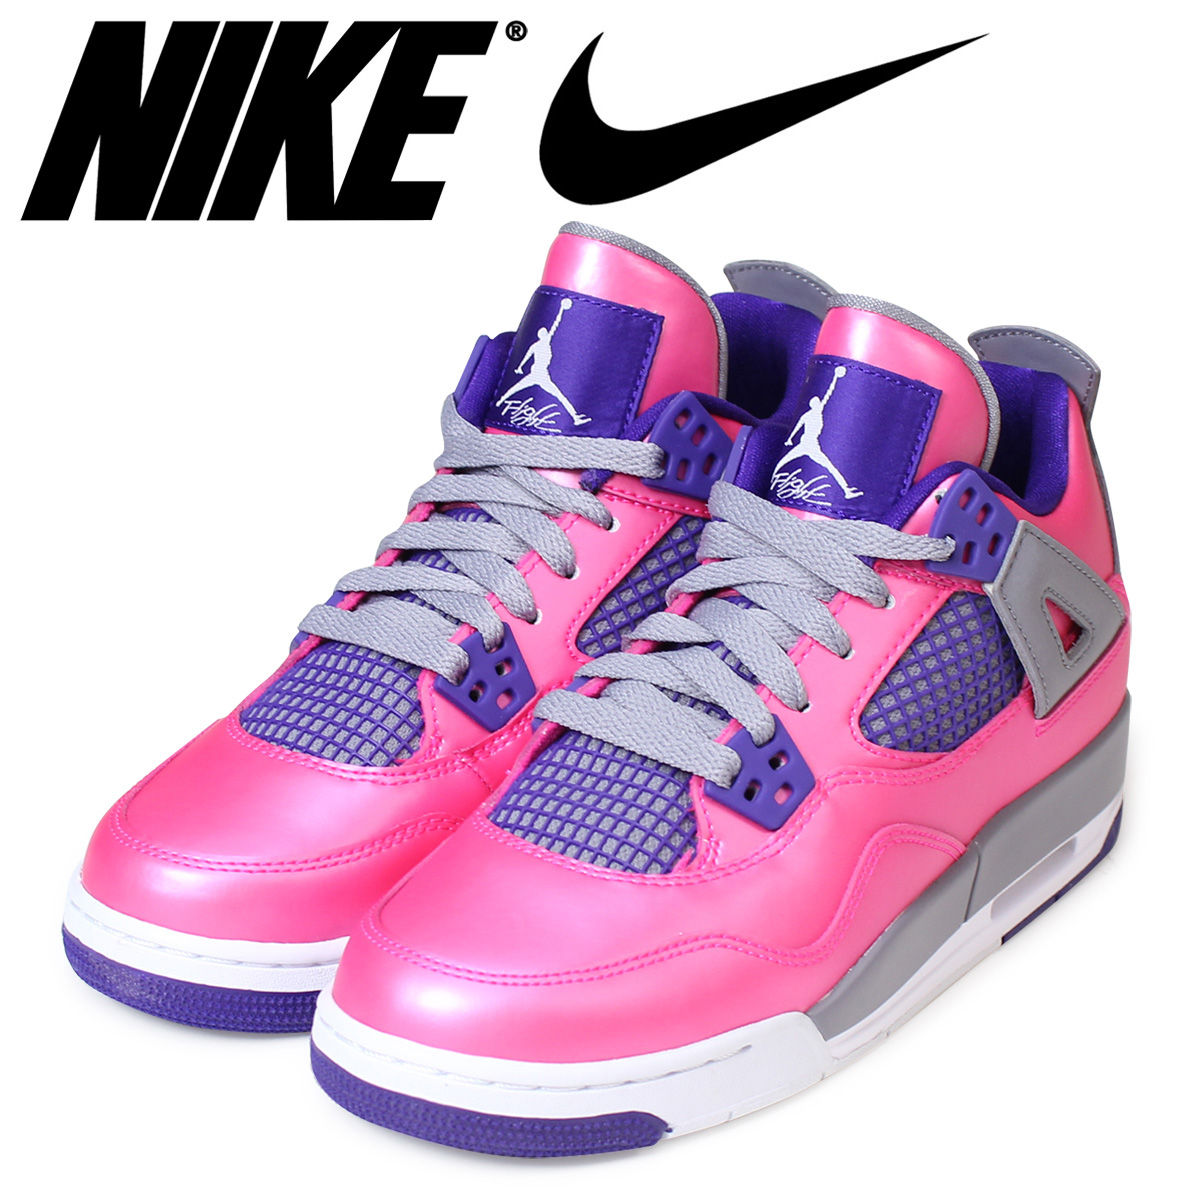 081cfcf74949 NIKE Nike Air Jordan sneakers Womens AIR JORDAN 4 RETRO GS Air Jordan 4  retro 487724 - 607 shoes pink